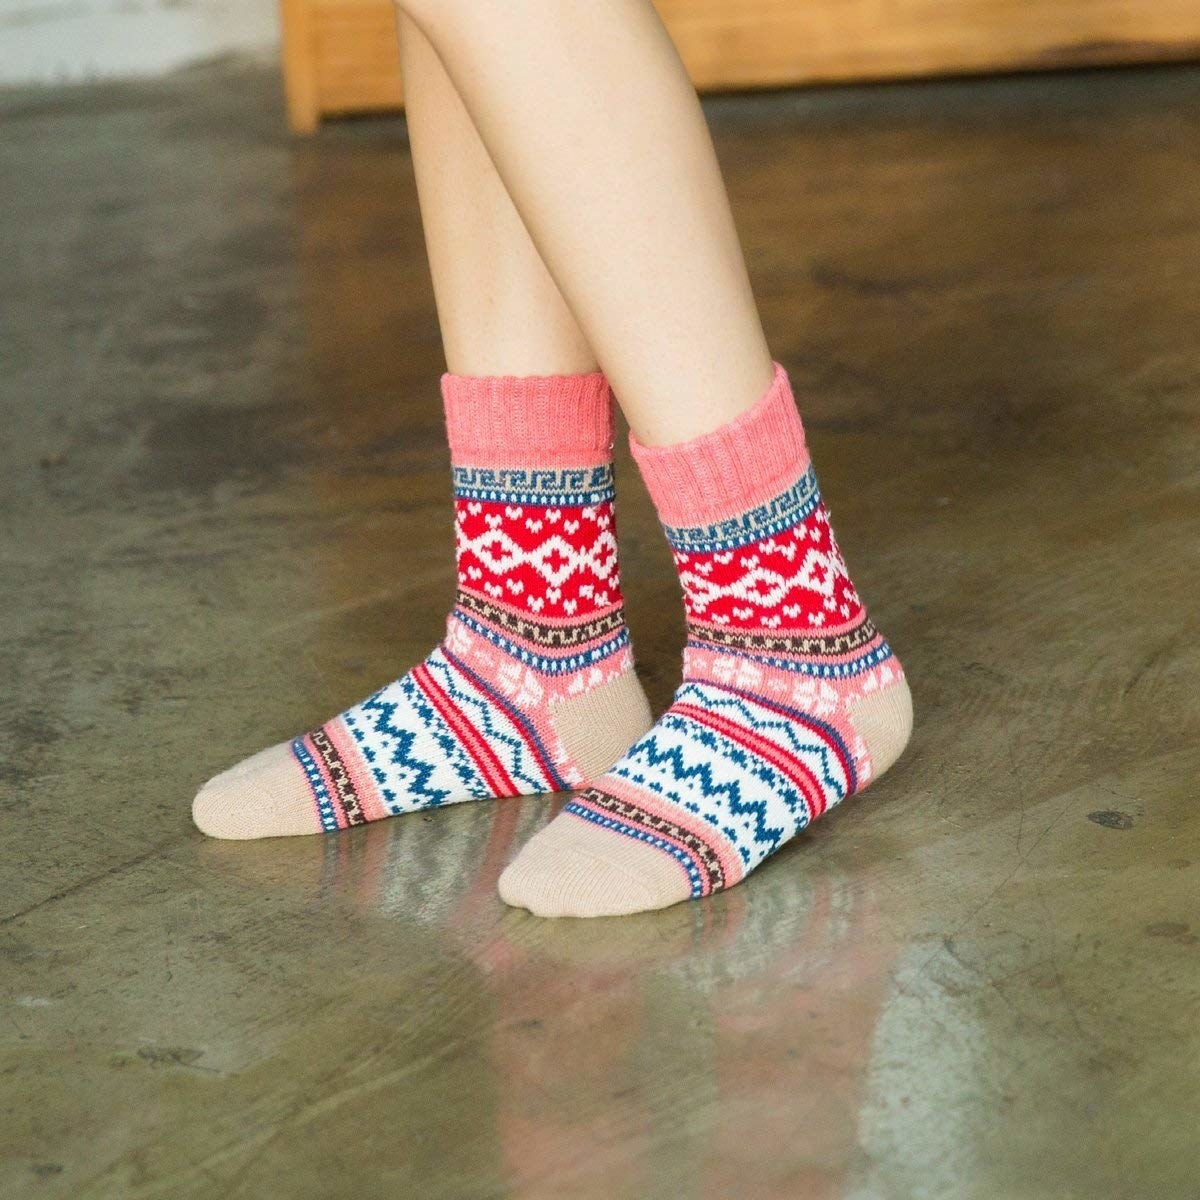 A model wearing the socks with a pink, red, brown, white, and blue Christmas sweater pattern